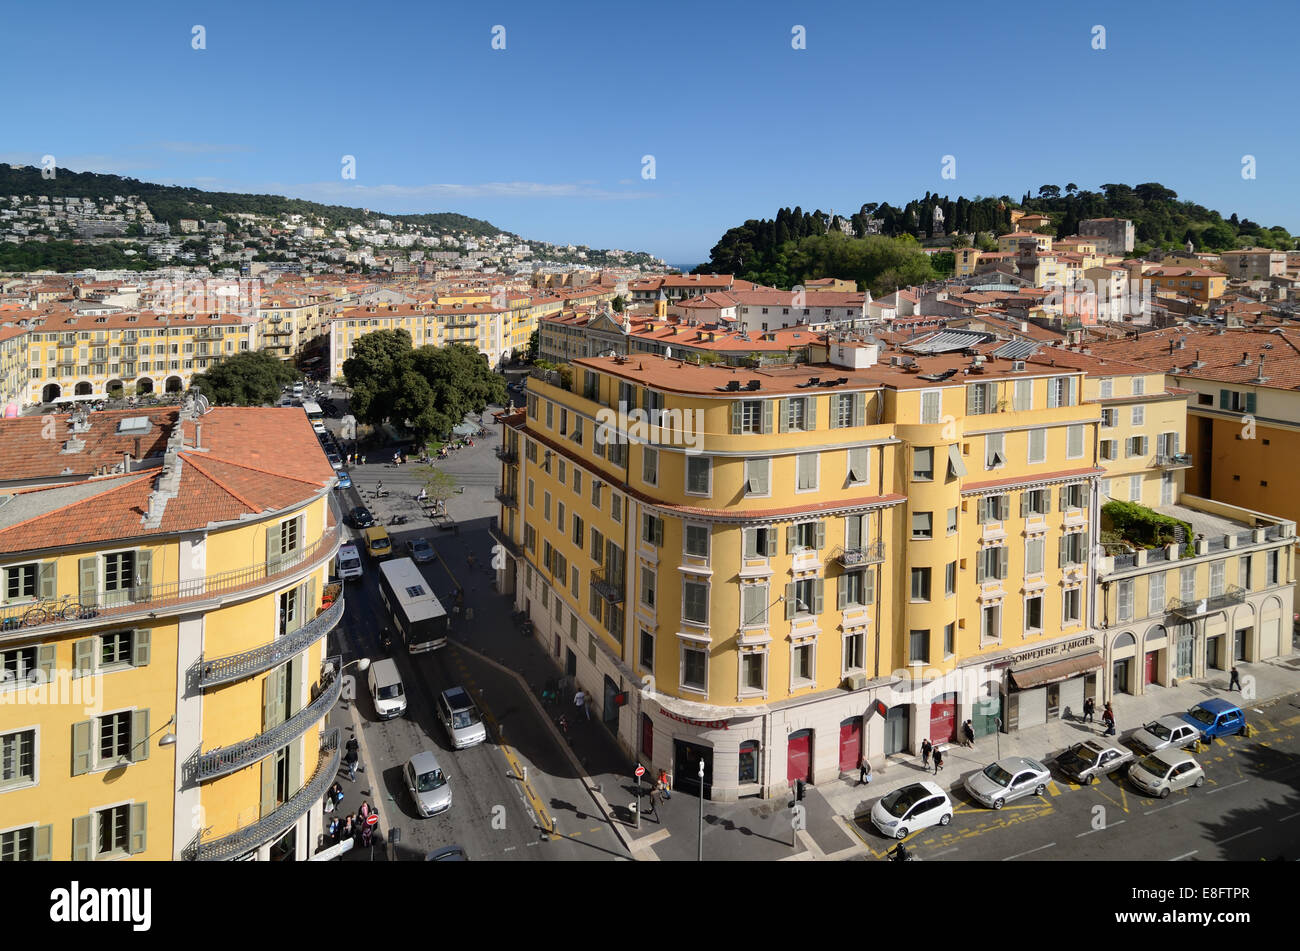 Panoramic View of the Old Town with the Place Garibaldi or Garibaldi Square & Site of Medieval Castle Nice Alpes Stock Photo